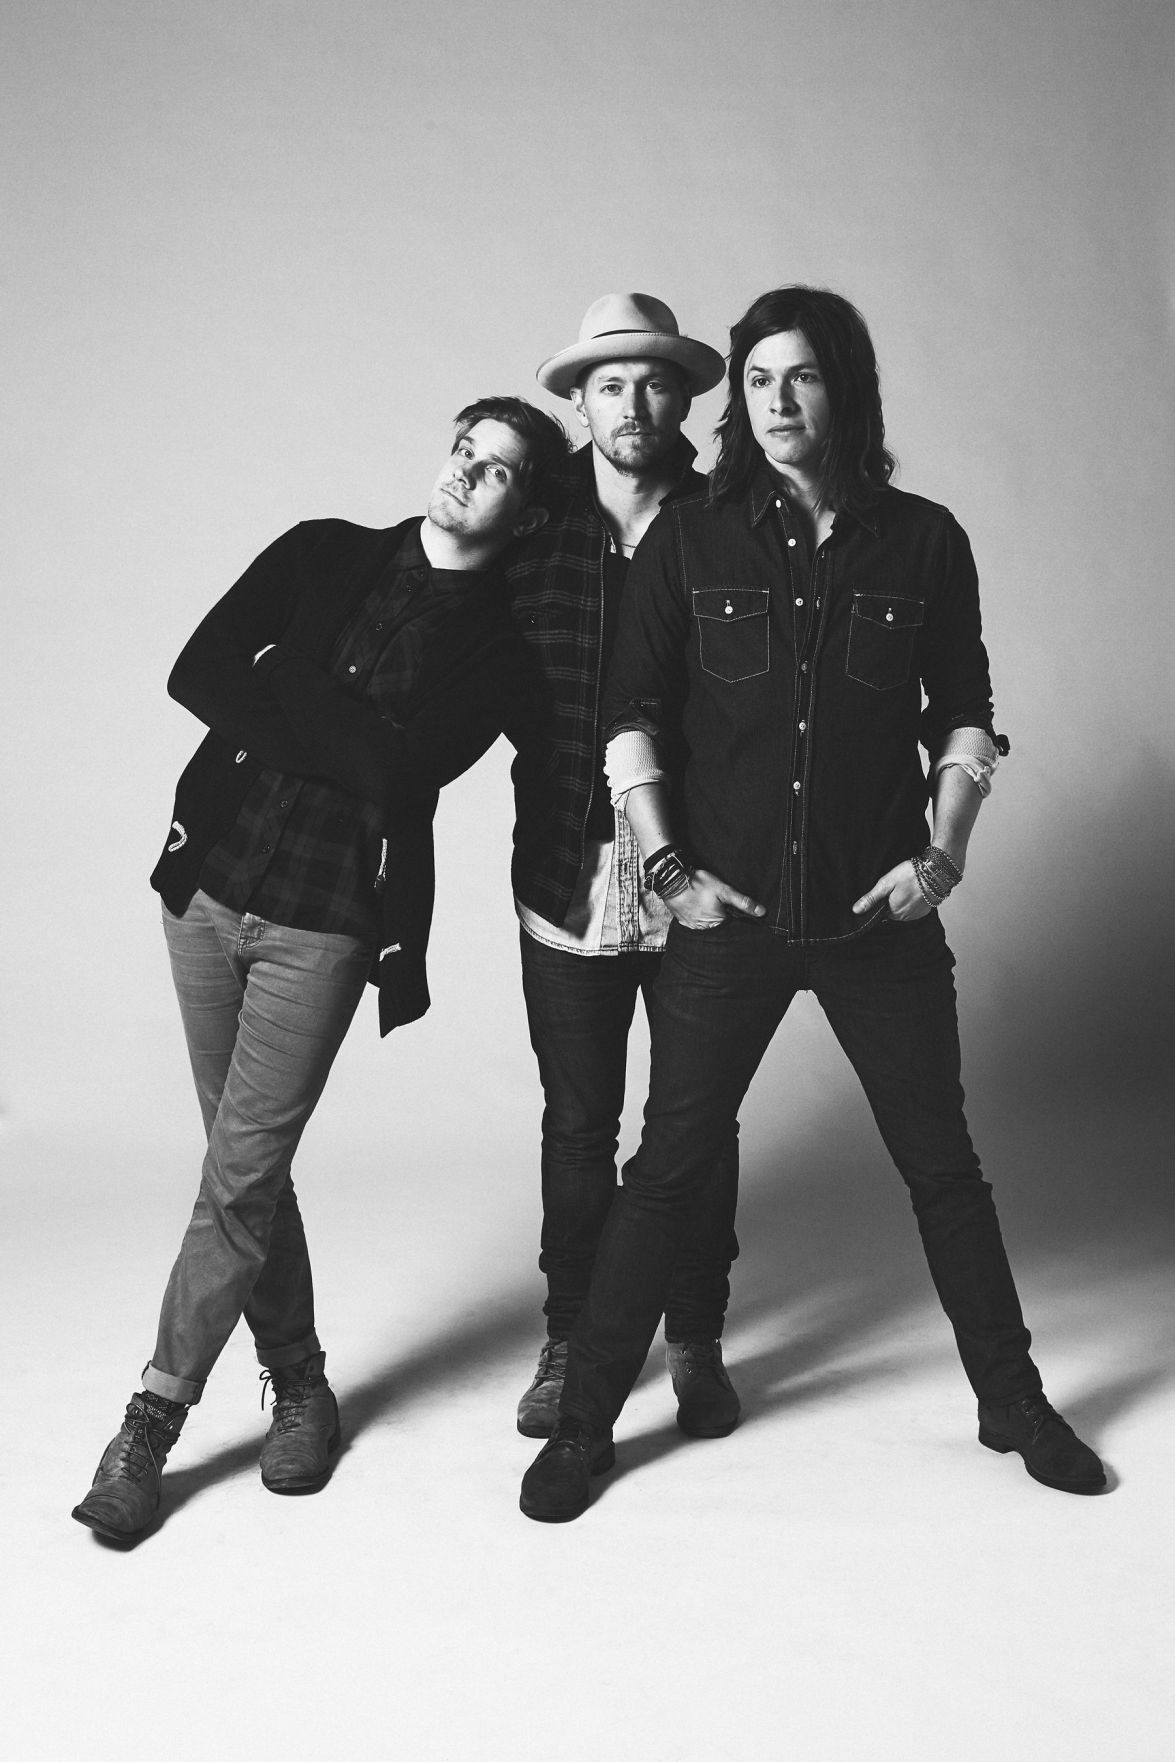 Tickets for Seneca band Needtobreathe's September show in North Charleston go on sale Friday